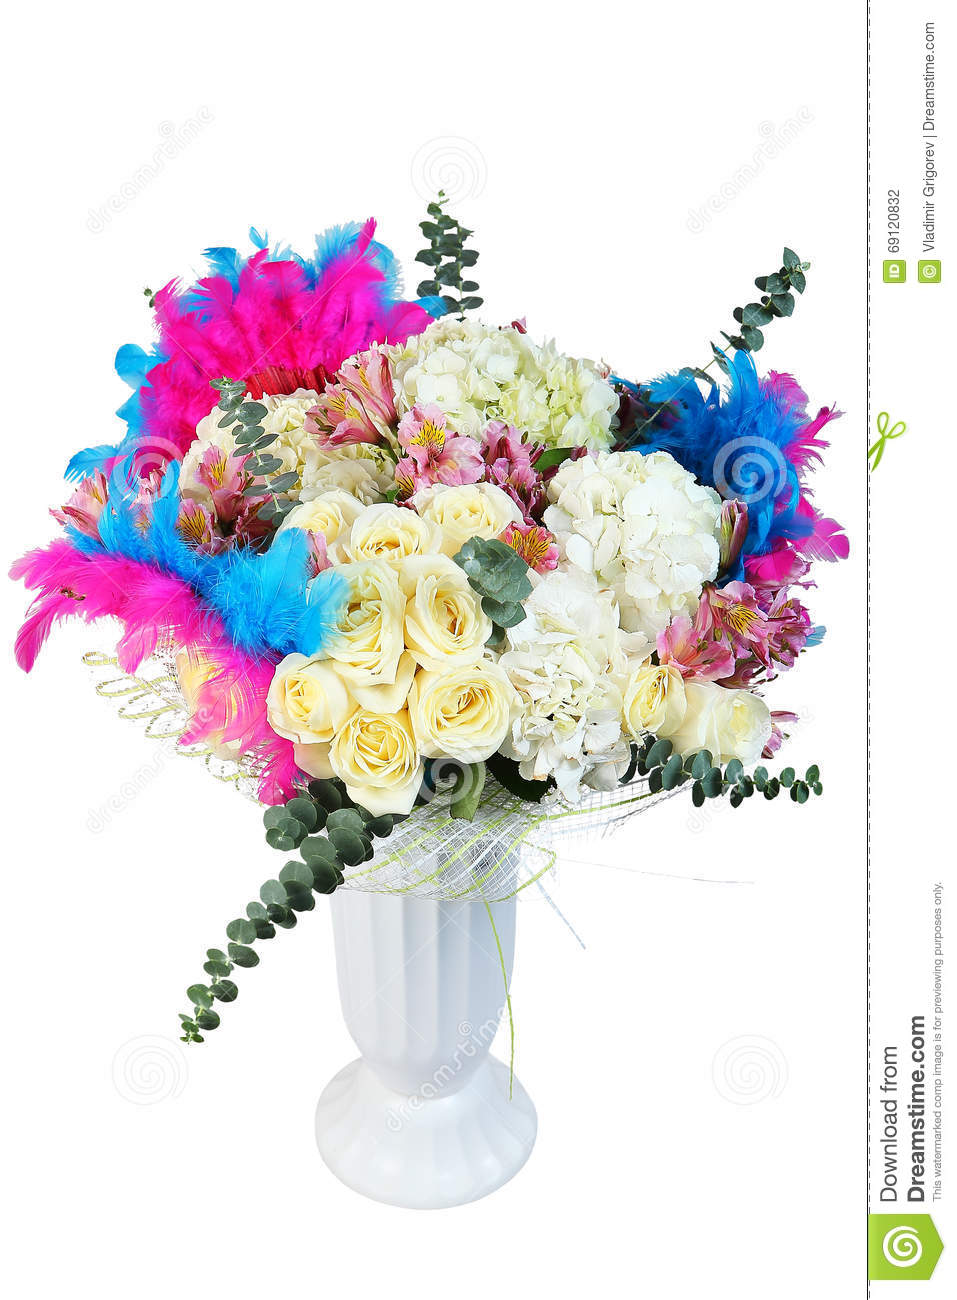 Flowers Bouquet Floral Arrangement With Cream Roses And Dyed Fe Stock Photo Image Of Plant Bouquet 69120832